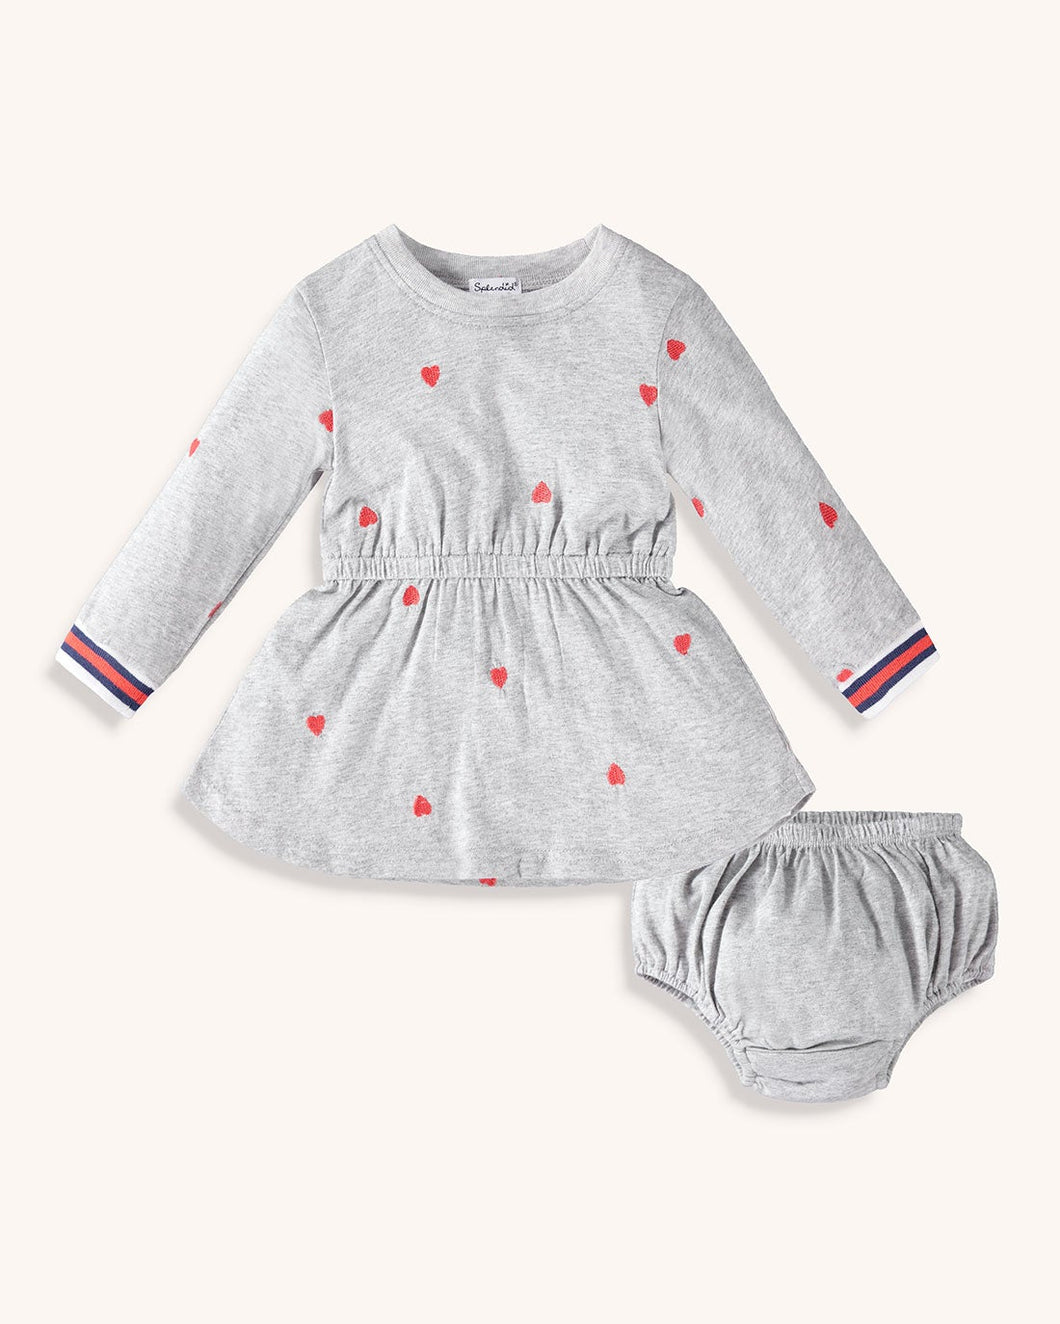 Baby Heart Dress Set